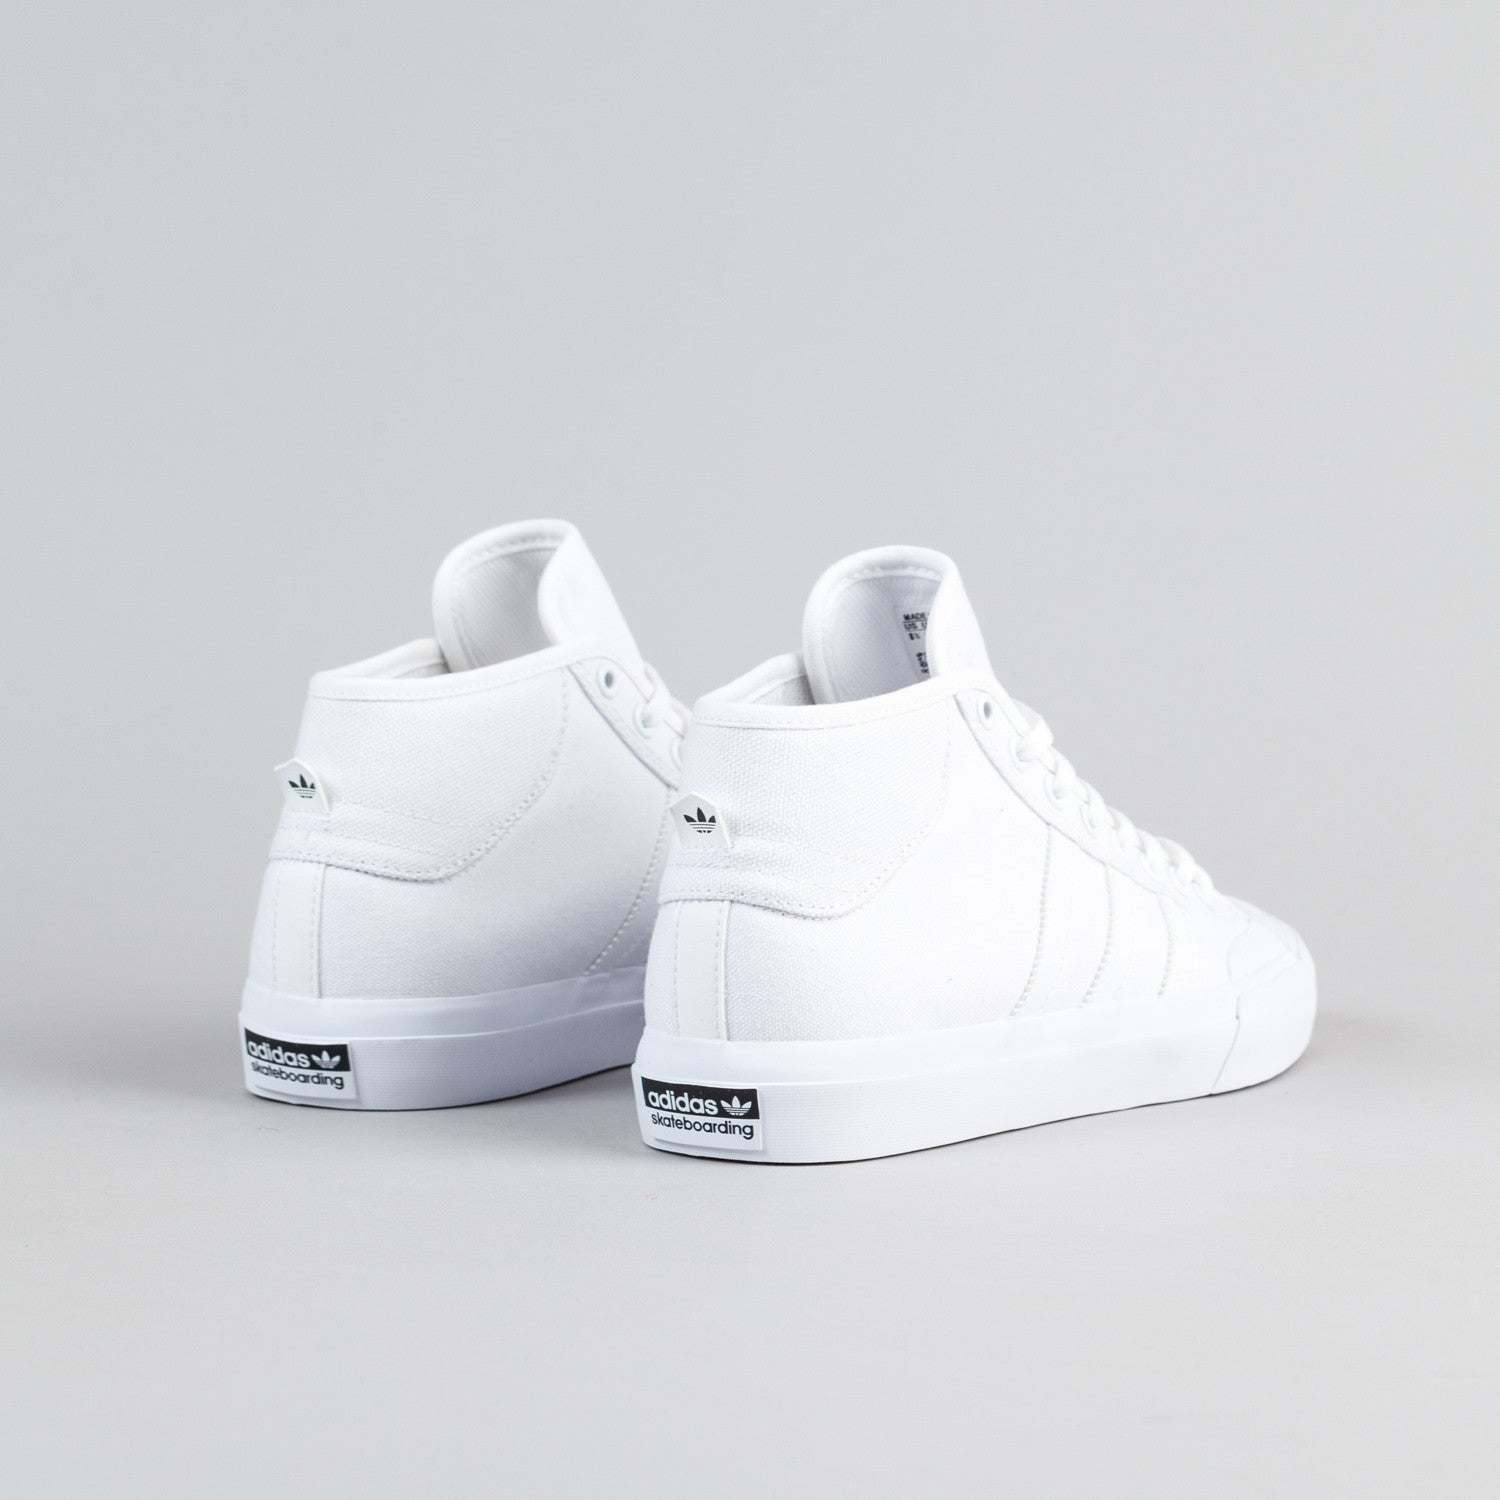 Adidas Matchcourt Mid Shoes - White / White